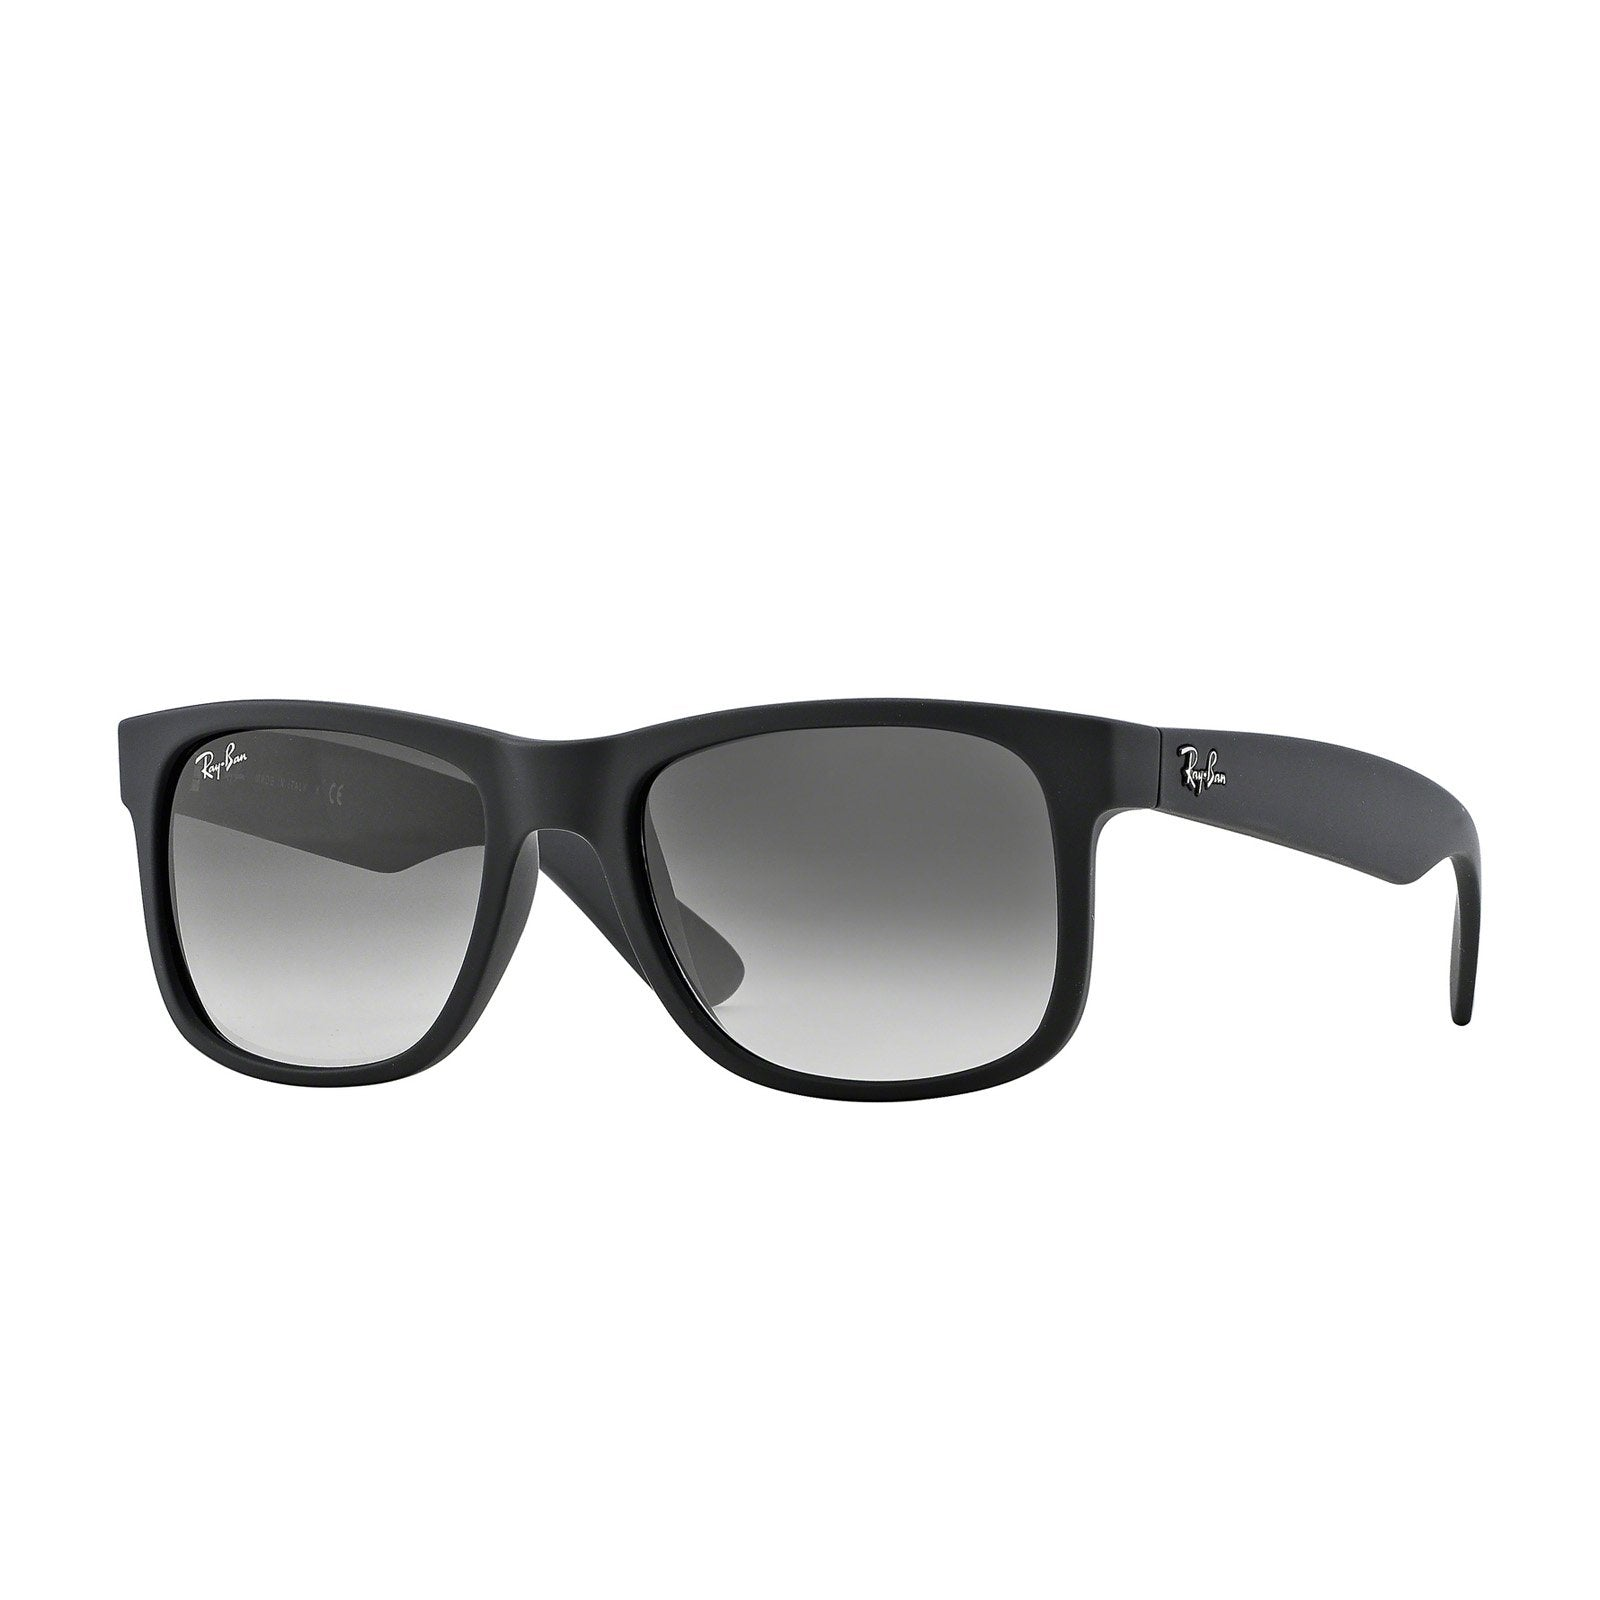 Ray-Ban RB4165 601/8G Sunglasses